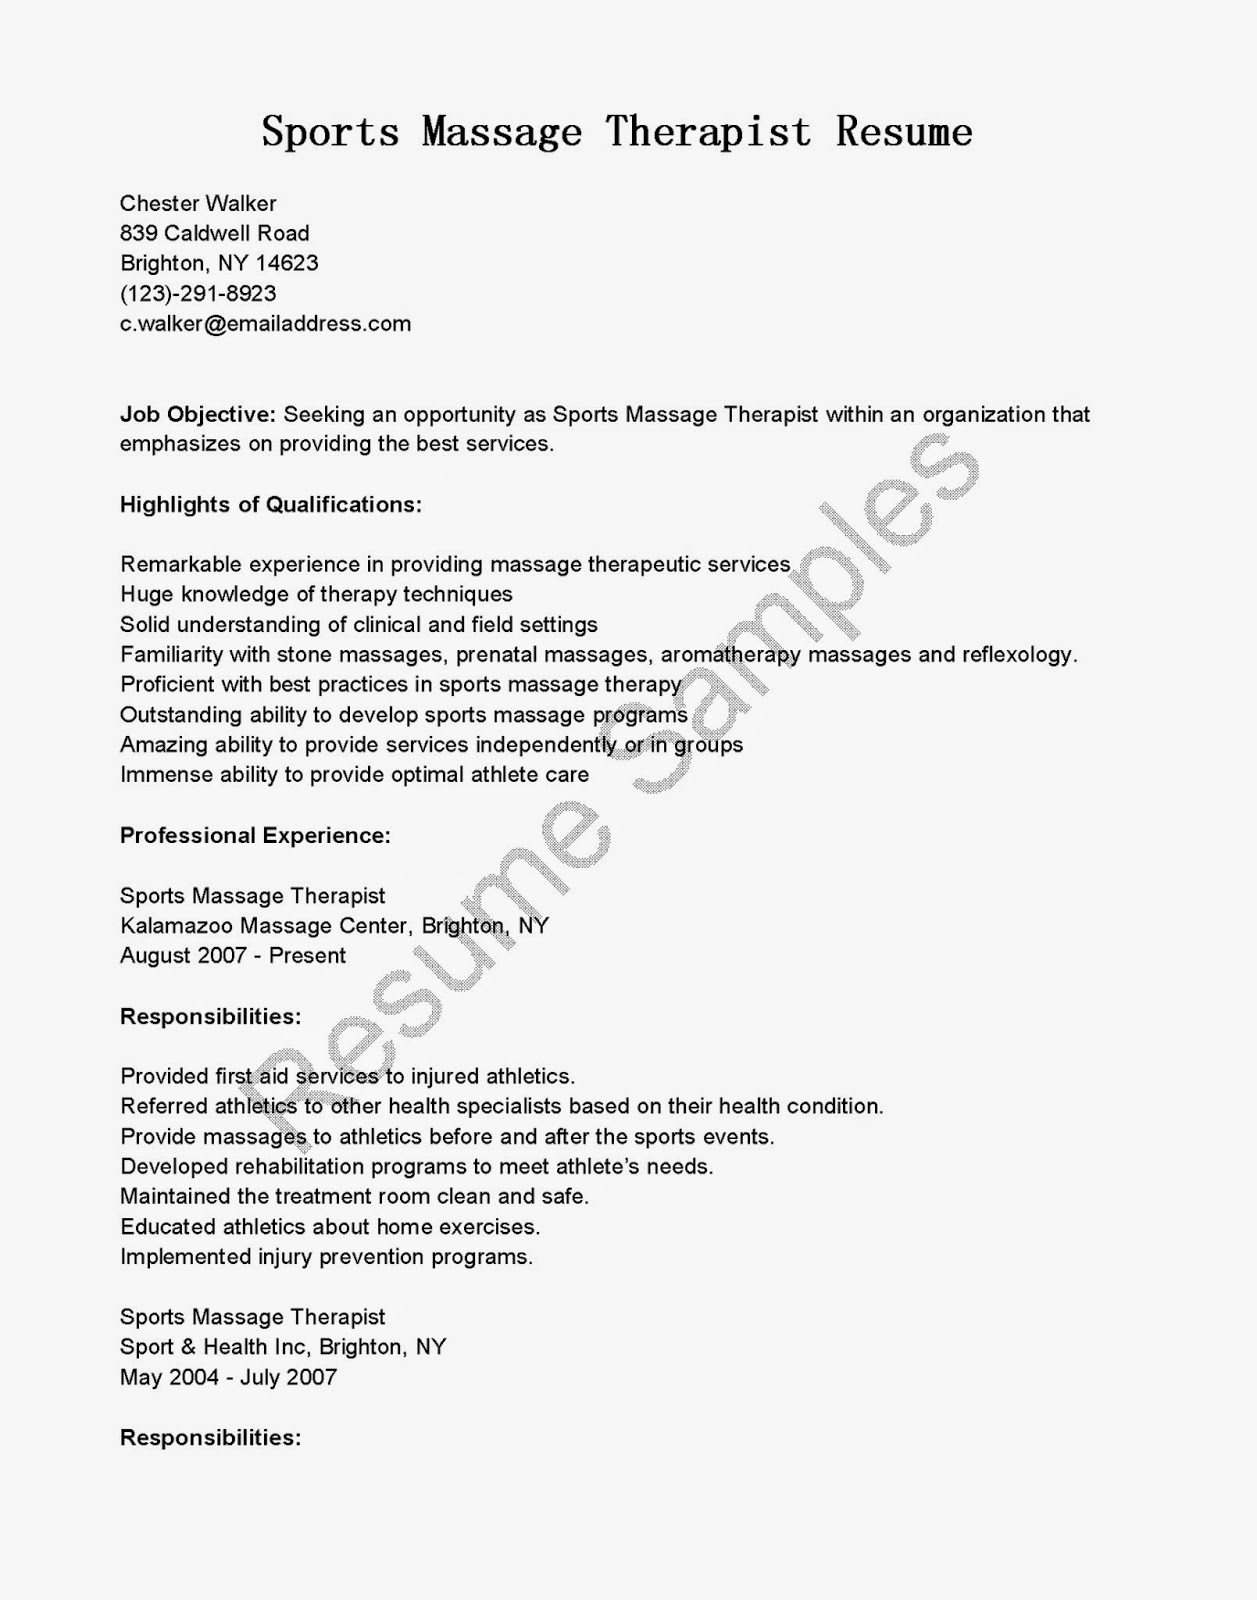 85 respiratory therapist resume samples kinesiology cover